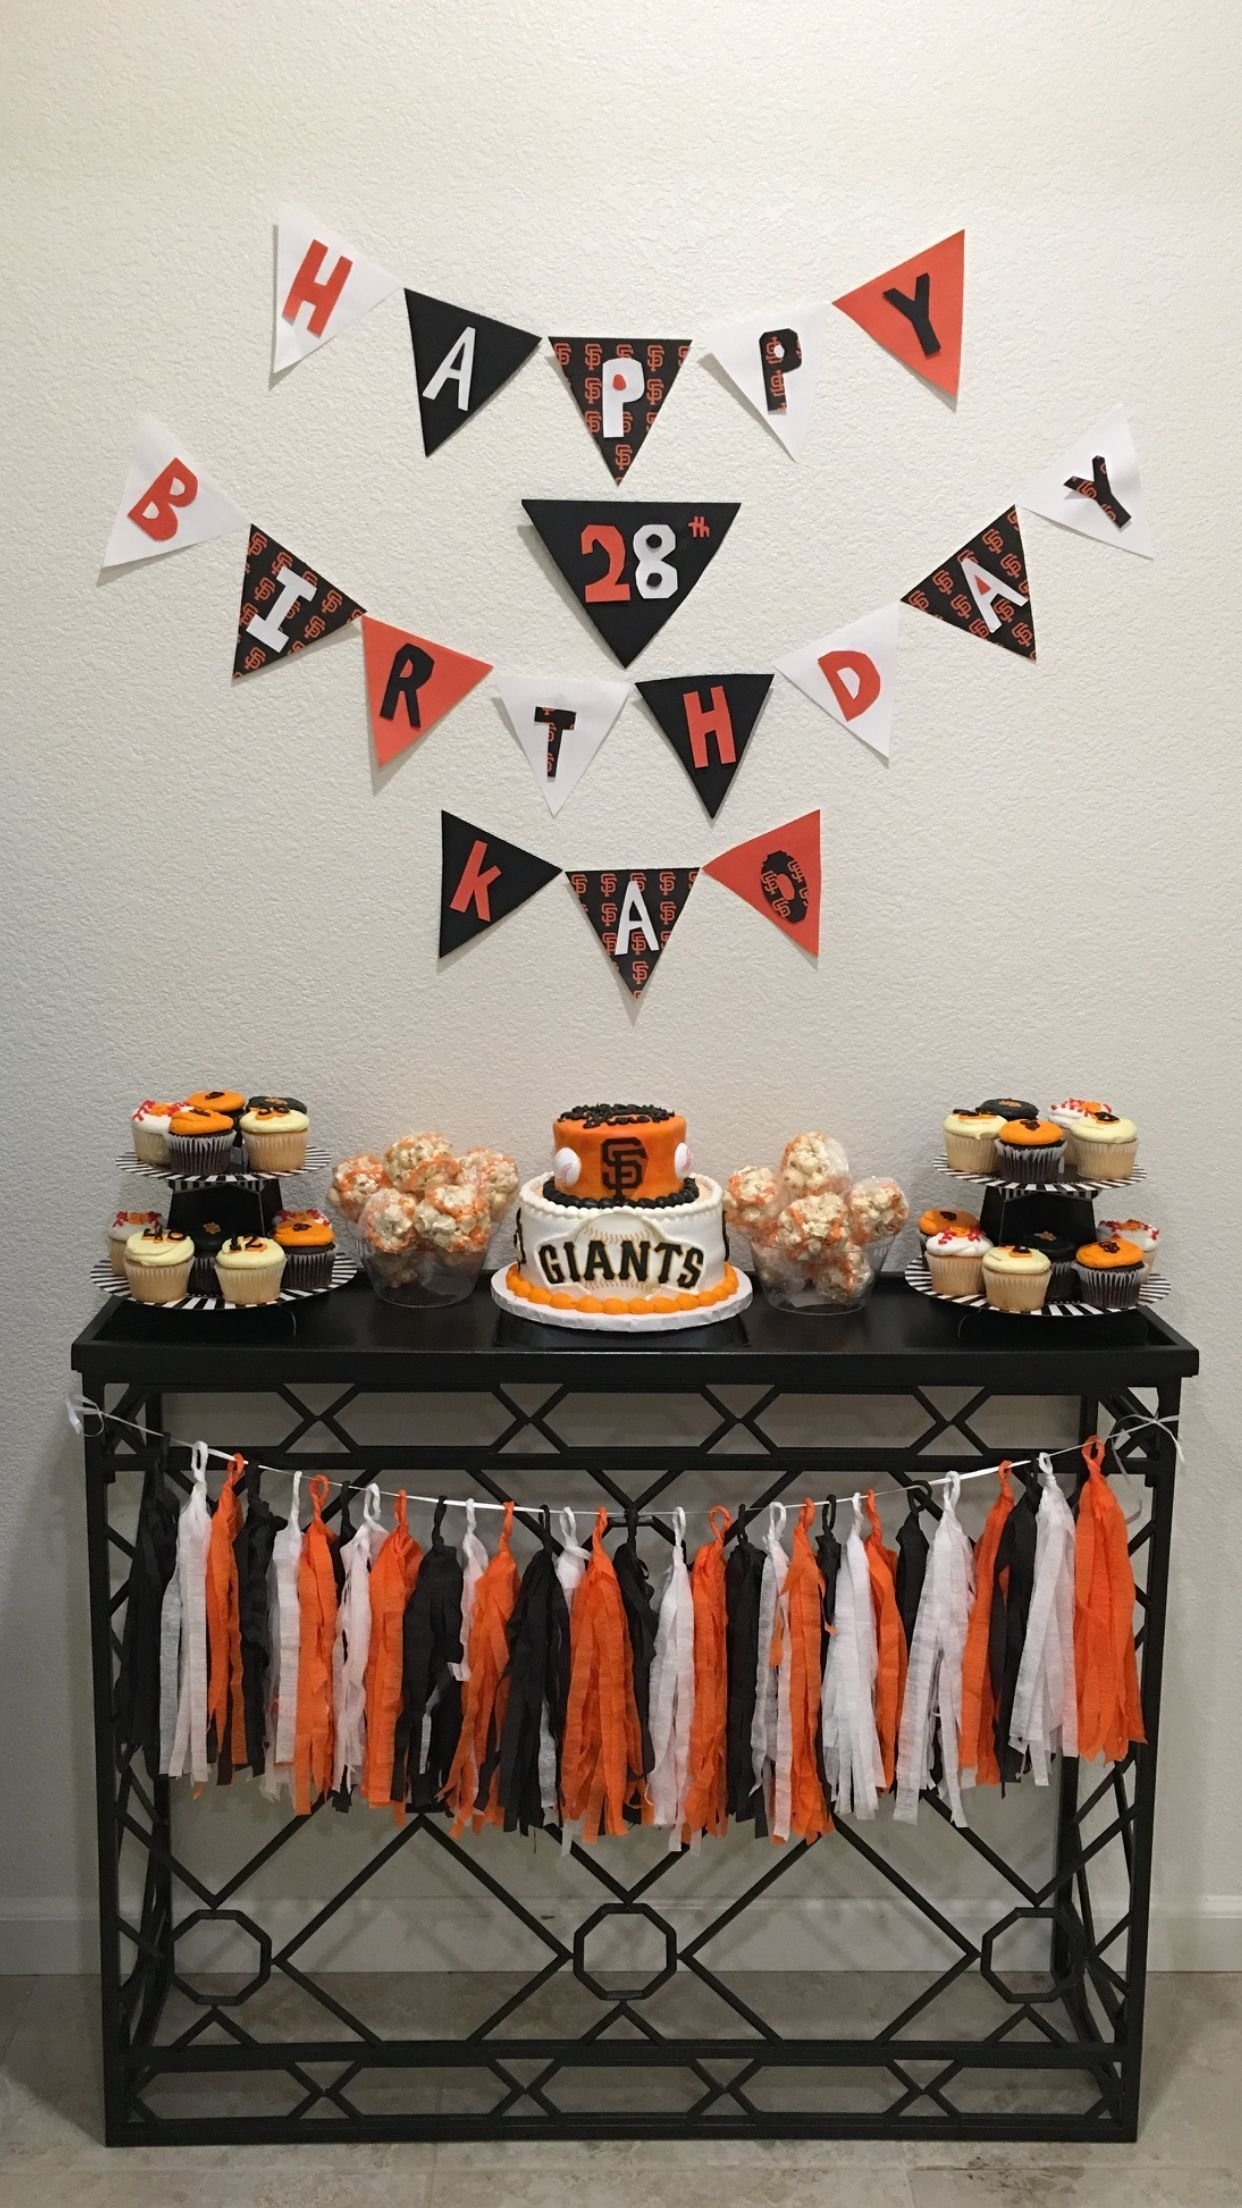 10 Unique Birthday Ideas In San Francisco Sf Giants Party Theme Birthdays